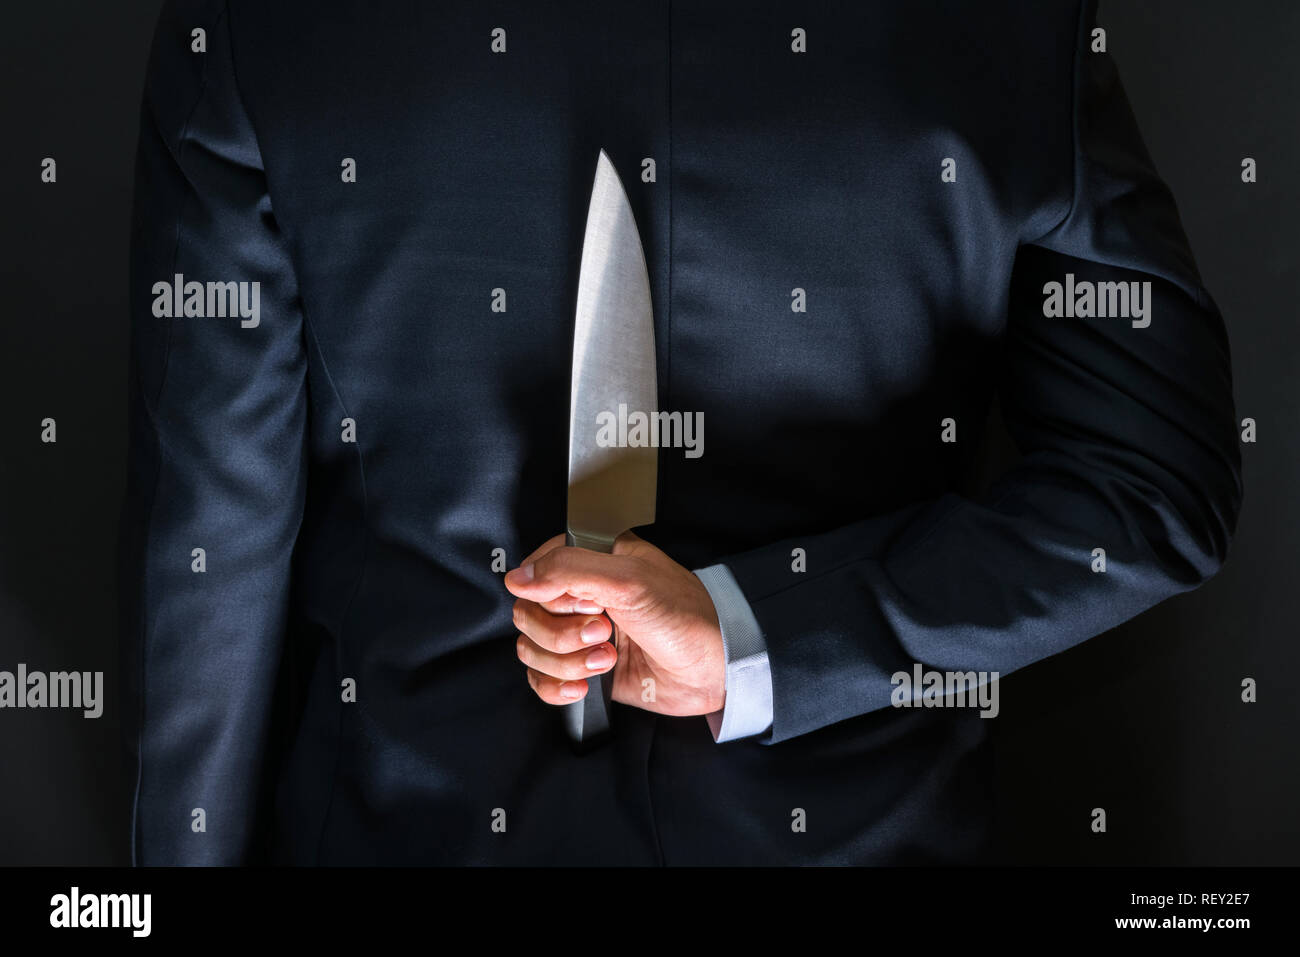 Robber with big knife - a killer person with sharp knife about to commit a homicide, murder scenery - Stock Image